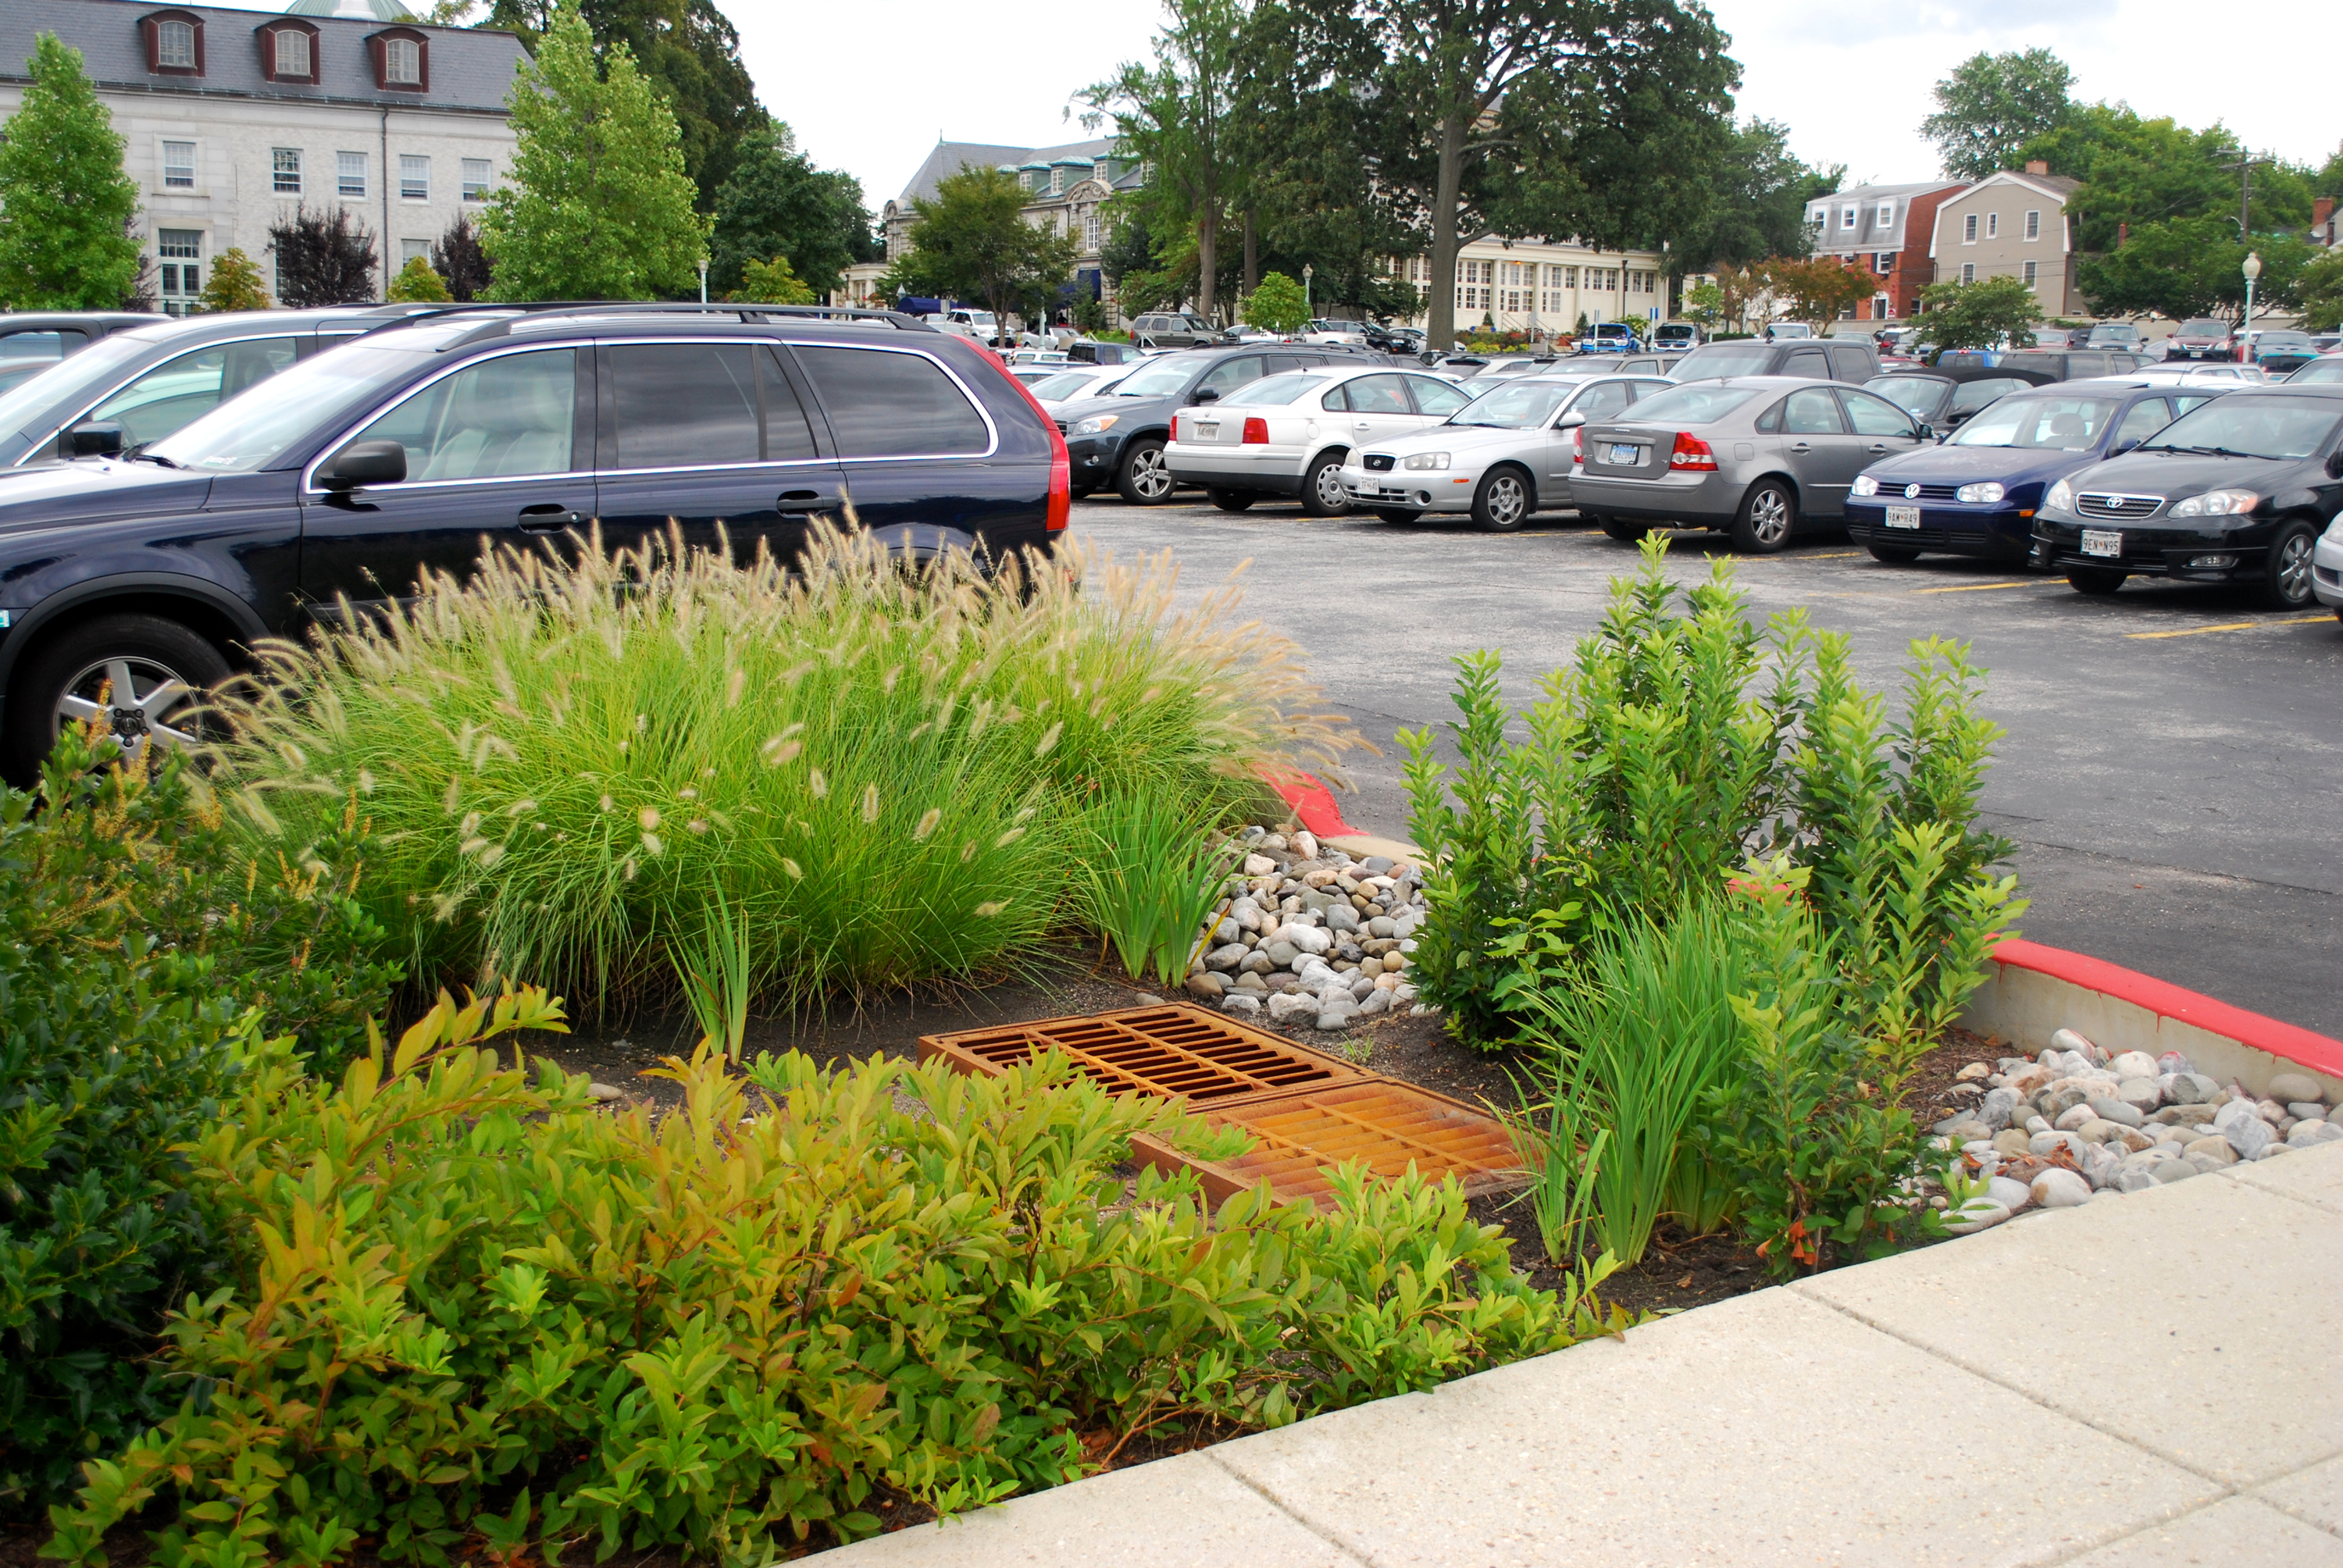 Car Park Raingarden in America